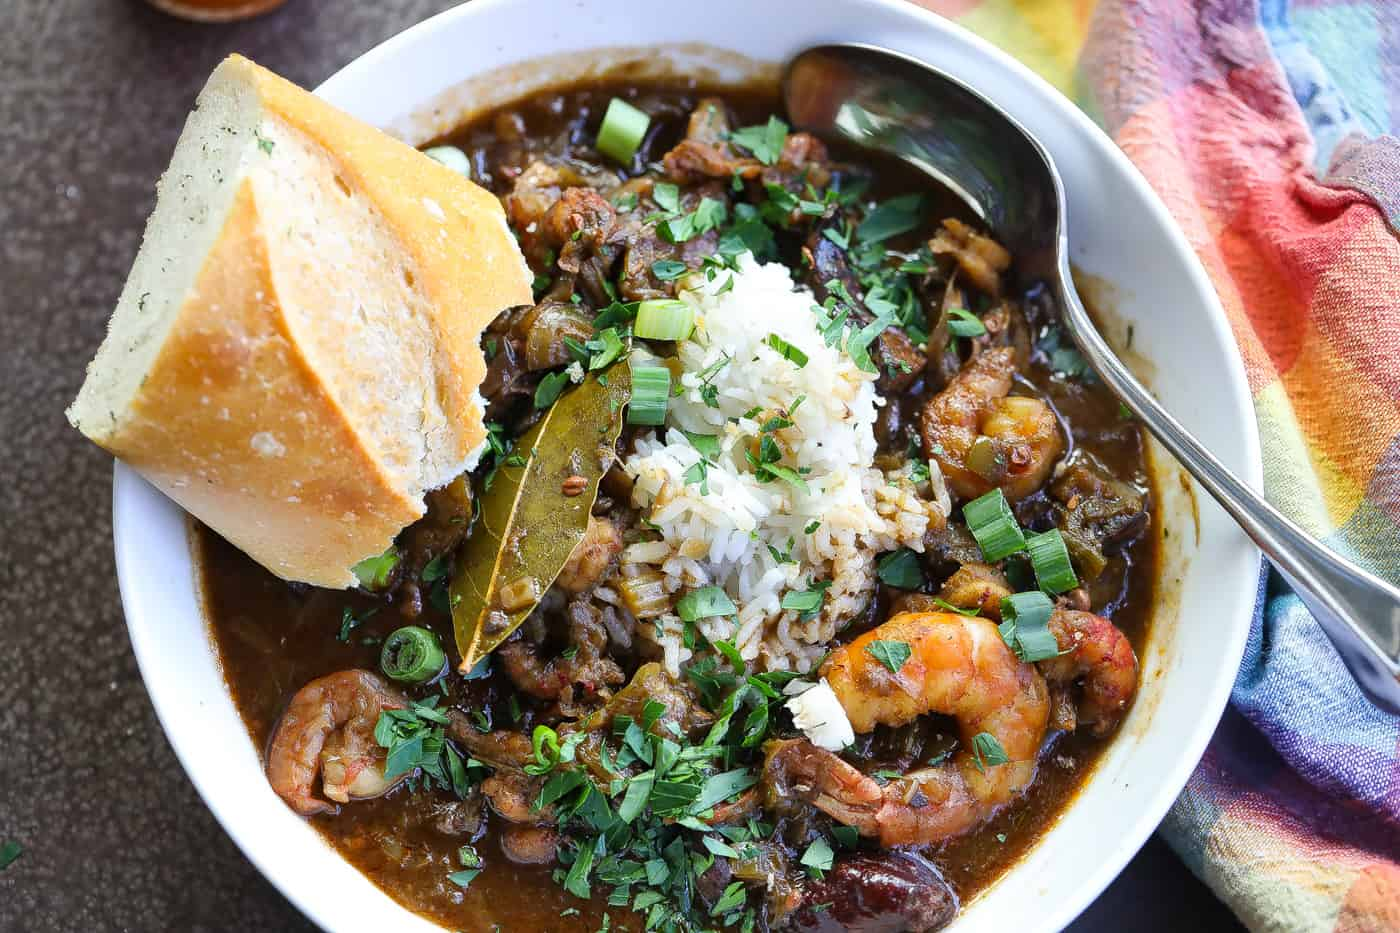 gumbo with rice and seafood in a white bowl